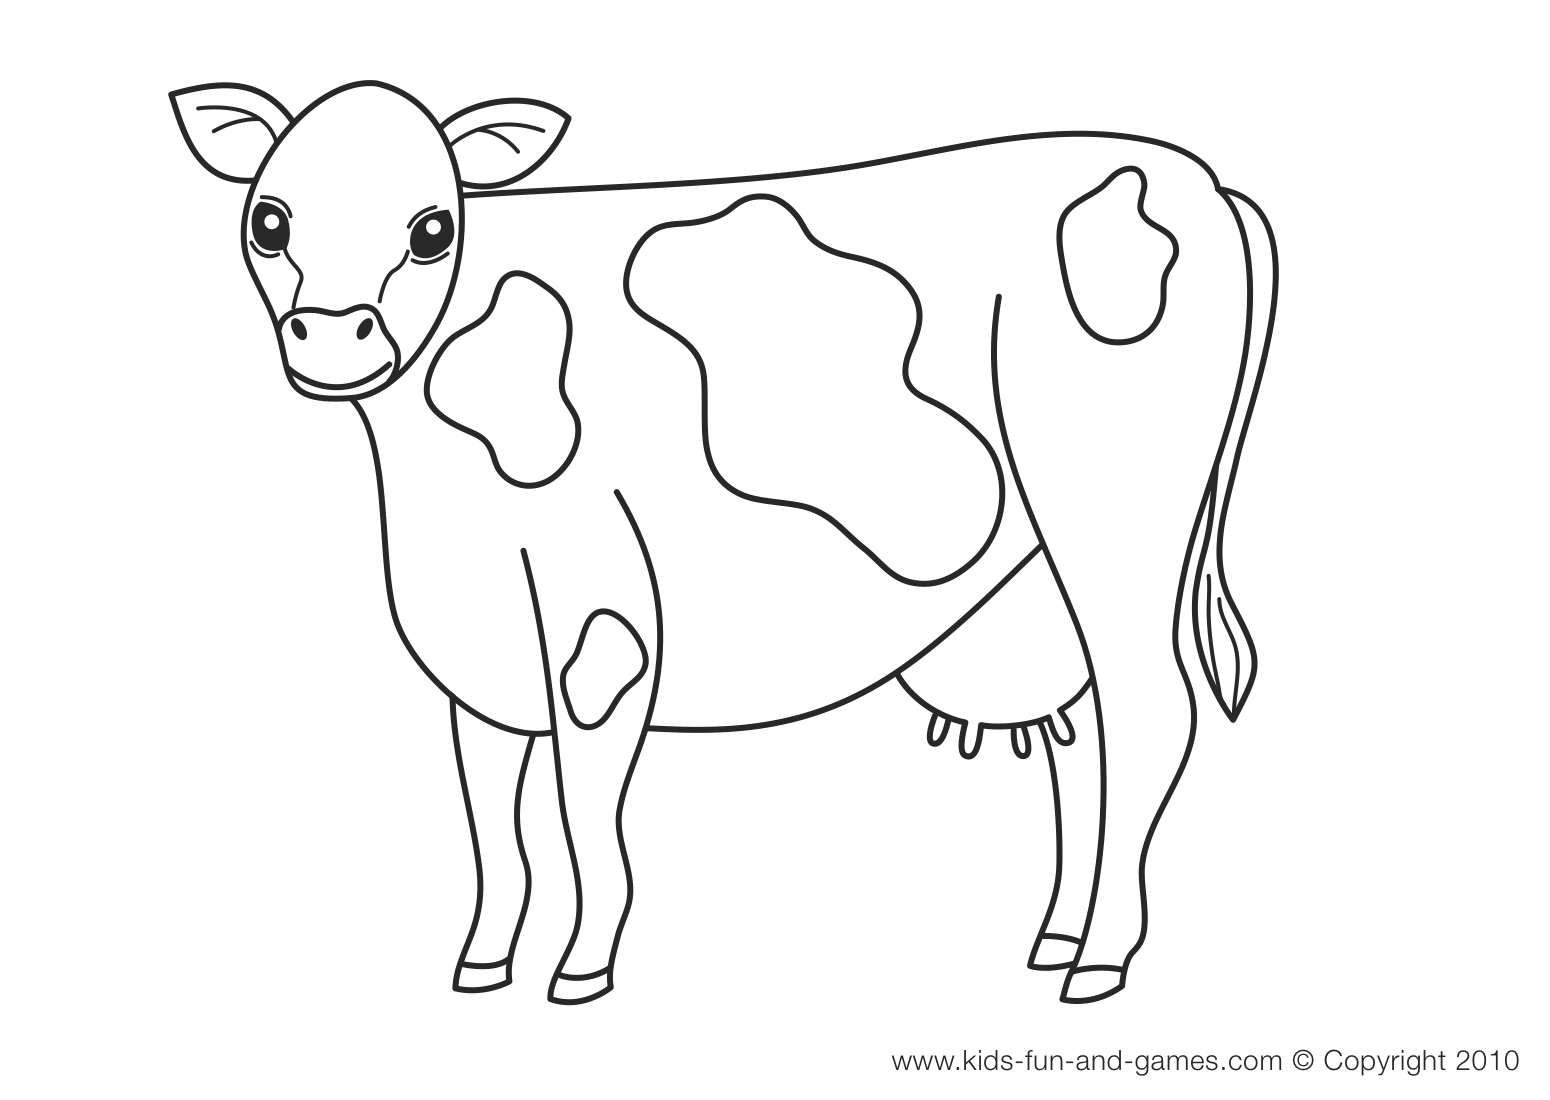 Cute Cow Coloring Pages Just One Of Free Kids Printables At Kids